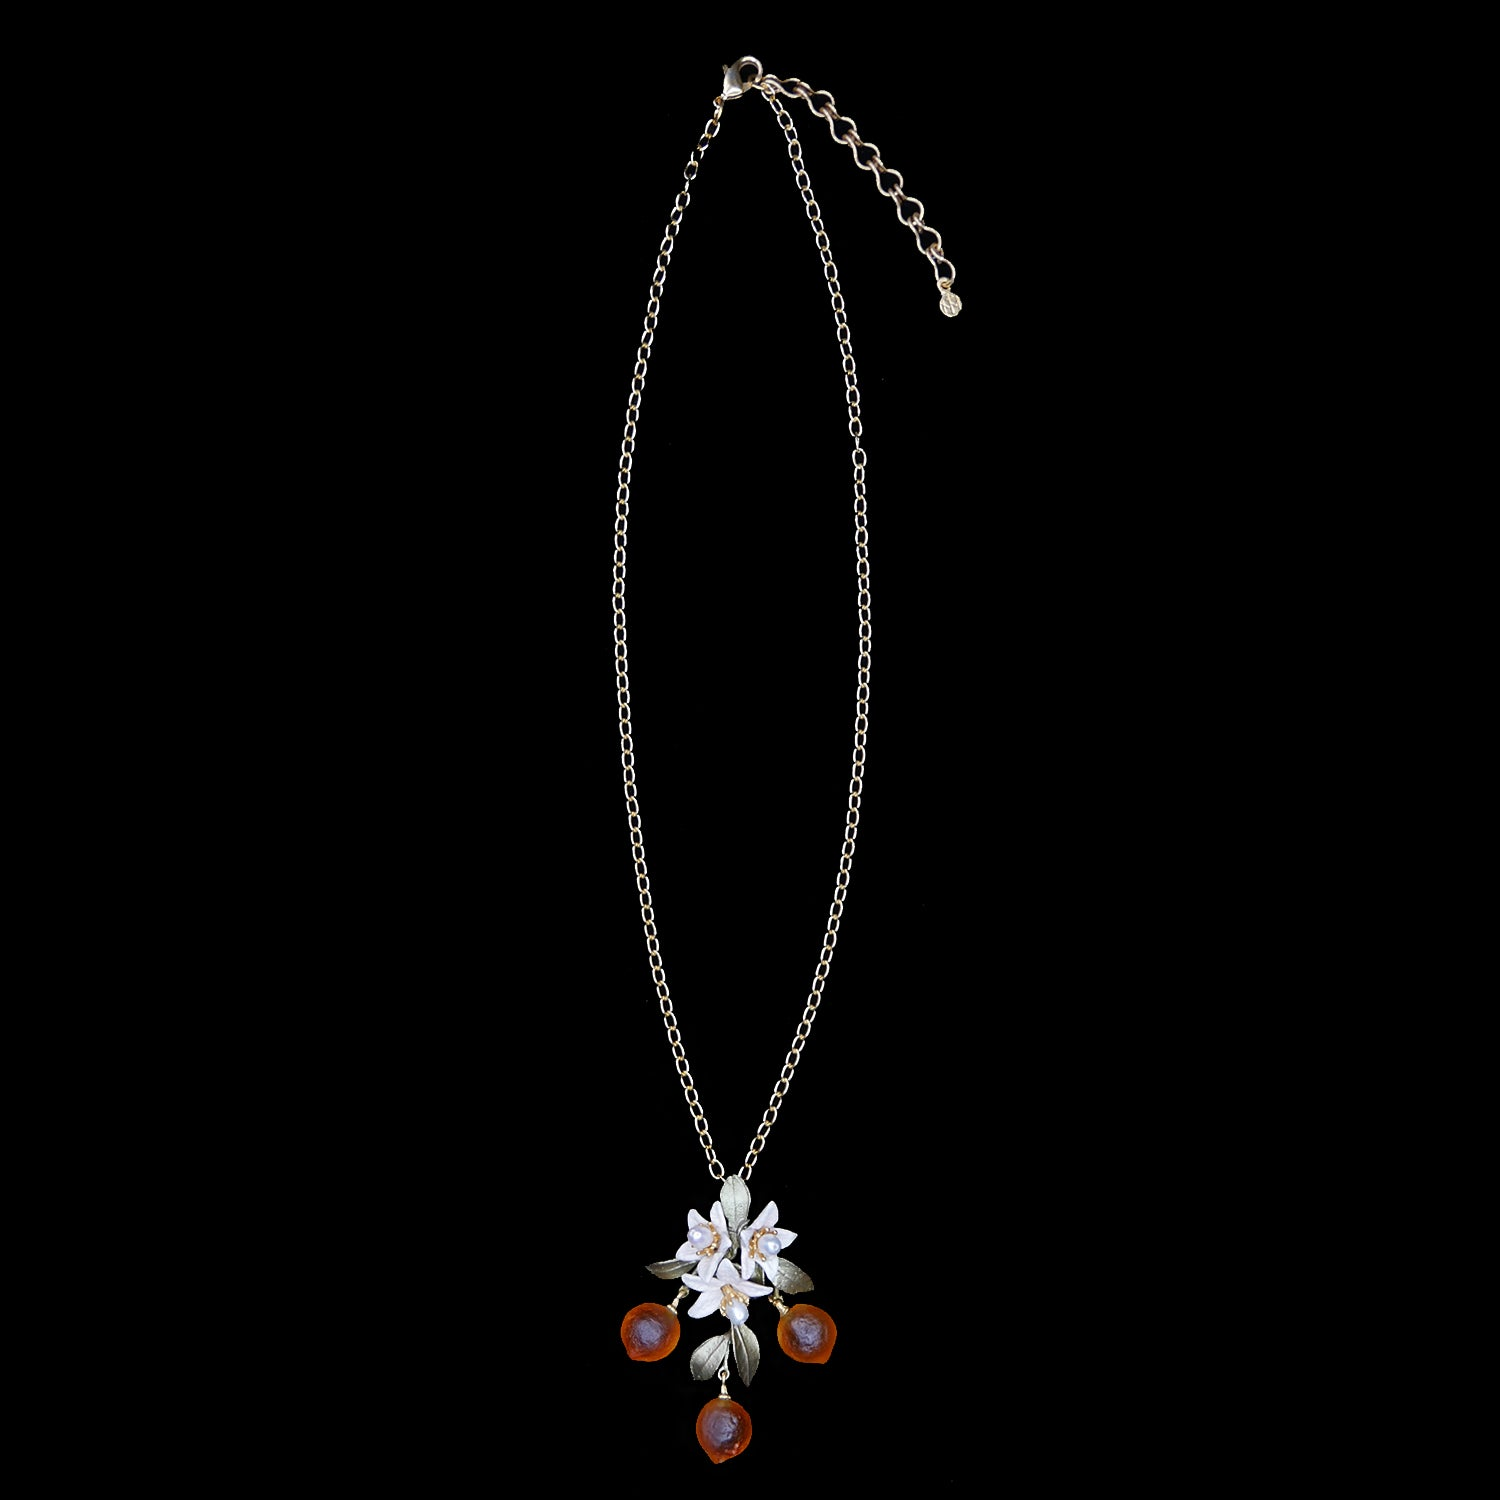 Orange Pendant - Flower Drop